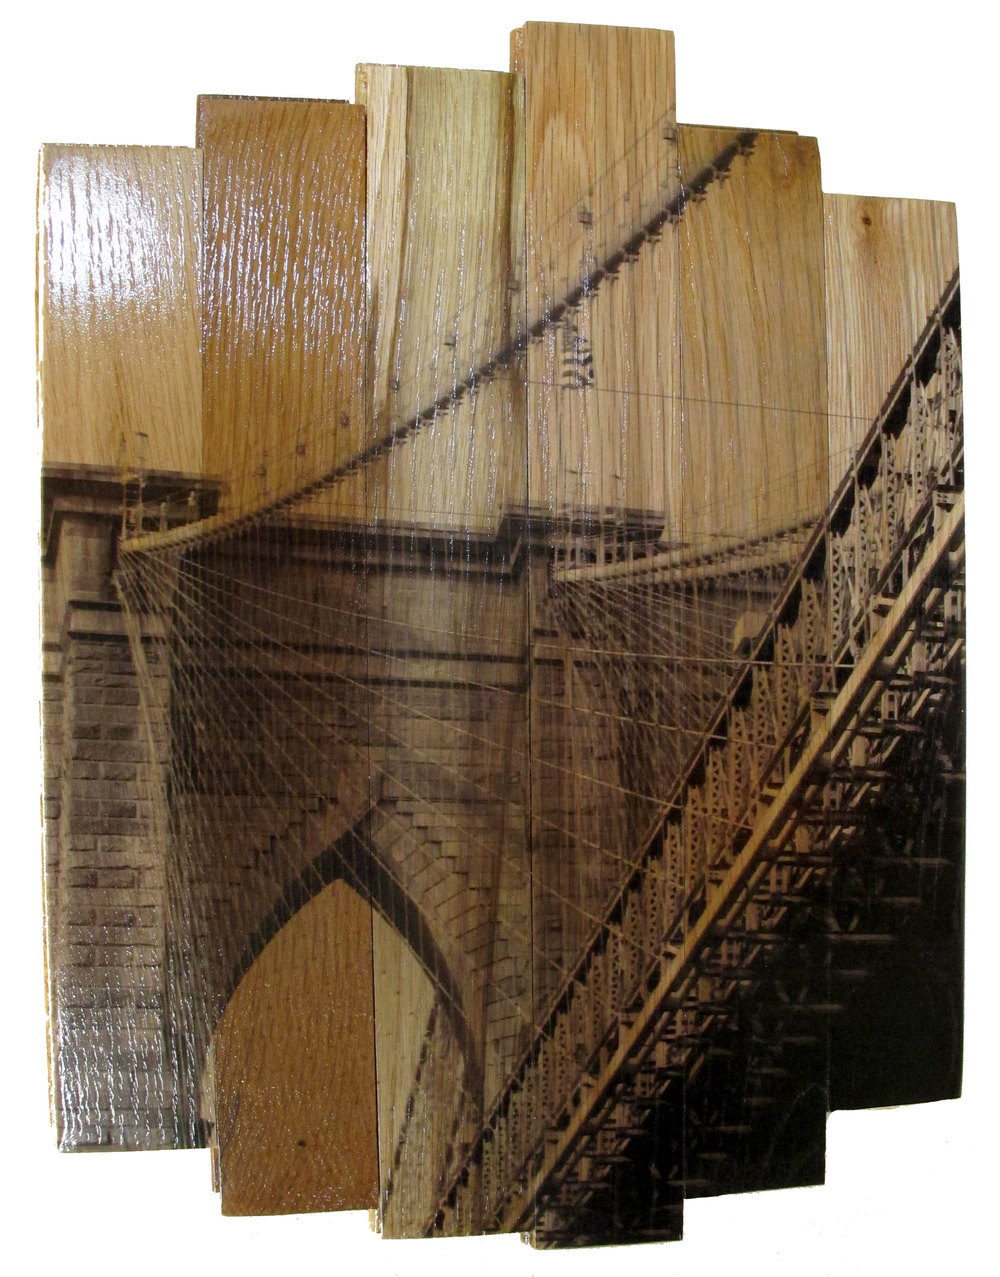 Brooklyn Bridge II,  2016 c print on reclaimed wood floor 17 x 14 x 1.5 in / 43 x 35.5 x 4 cm  Unique